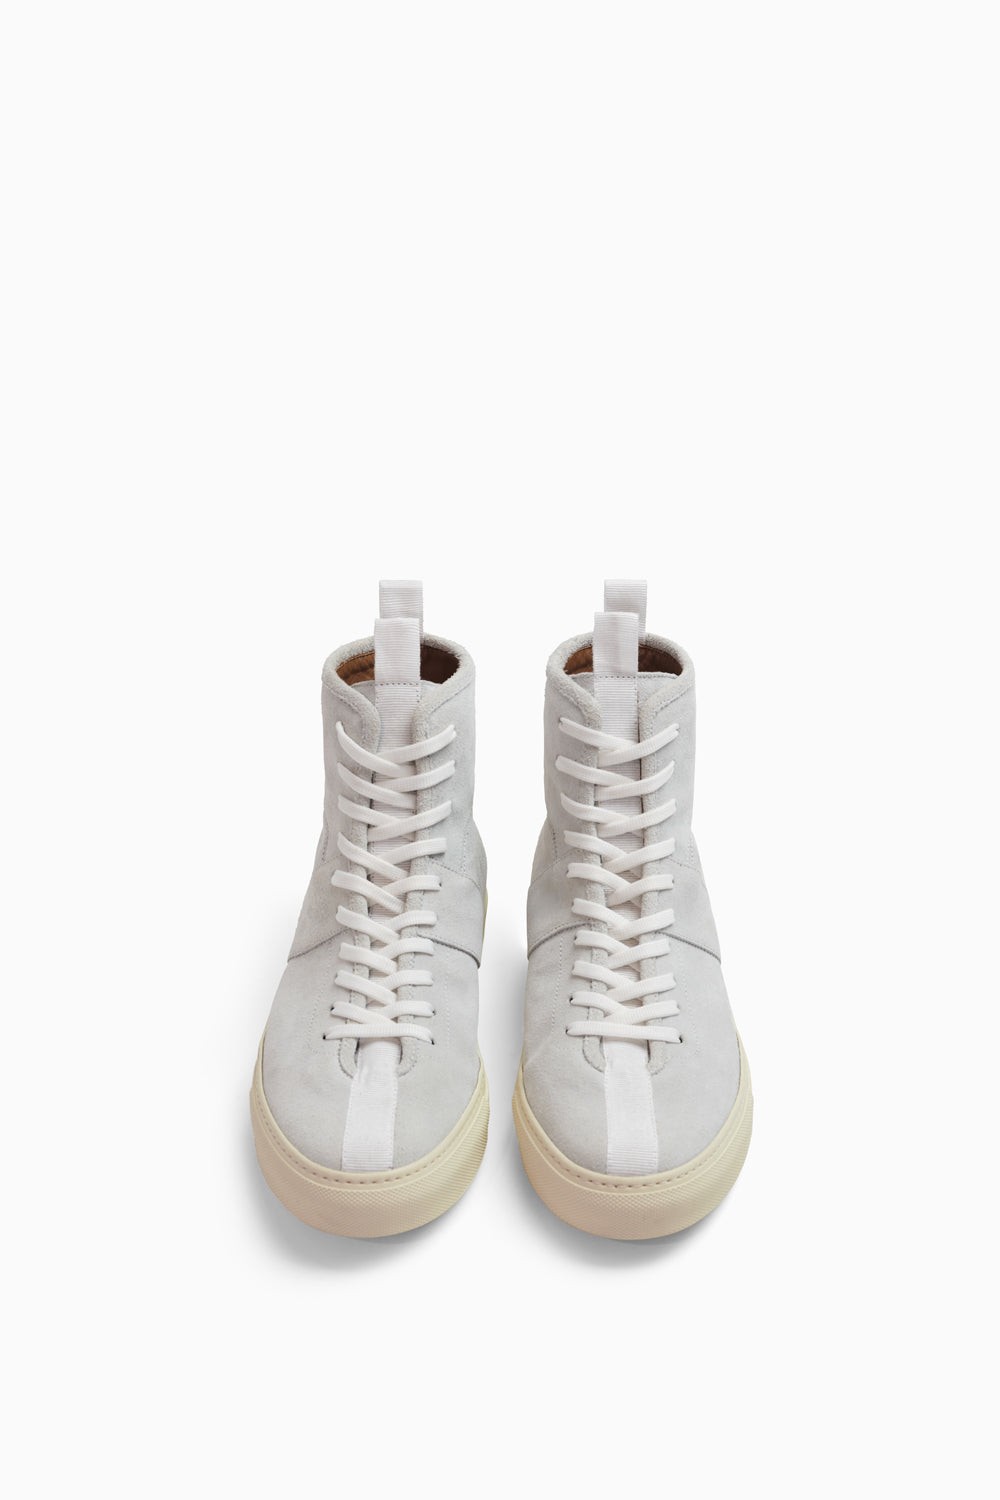 high top roamer in white suede by daniel patrick